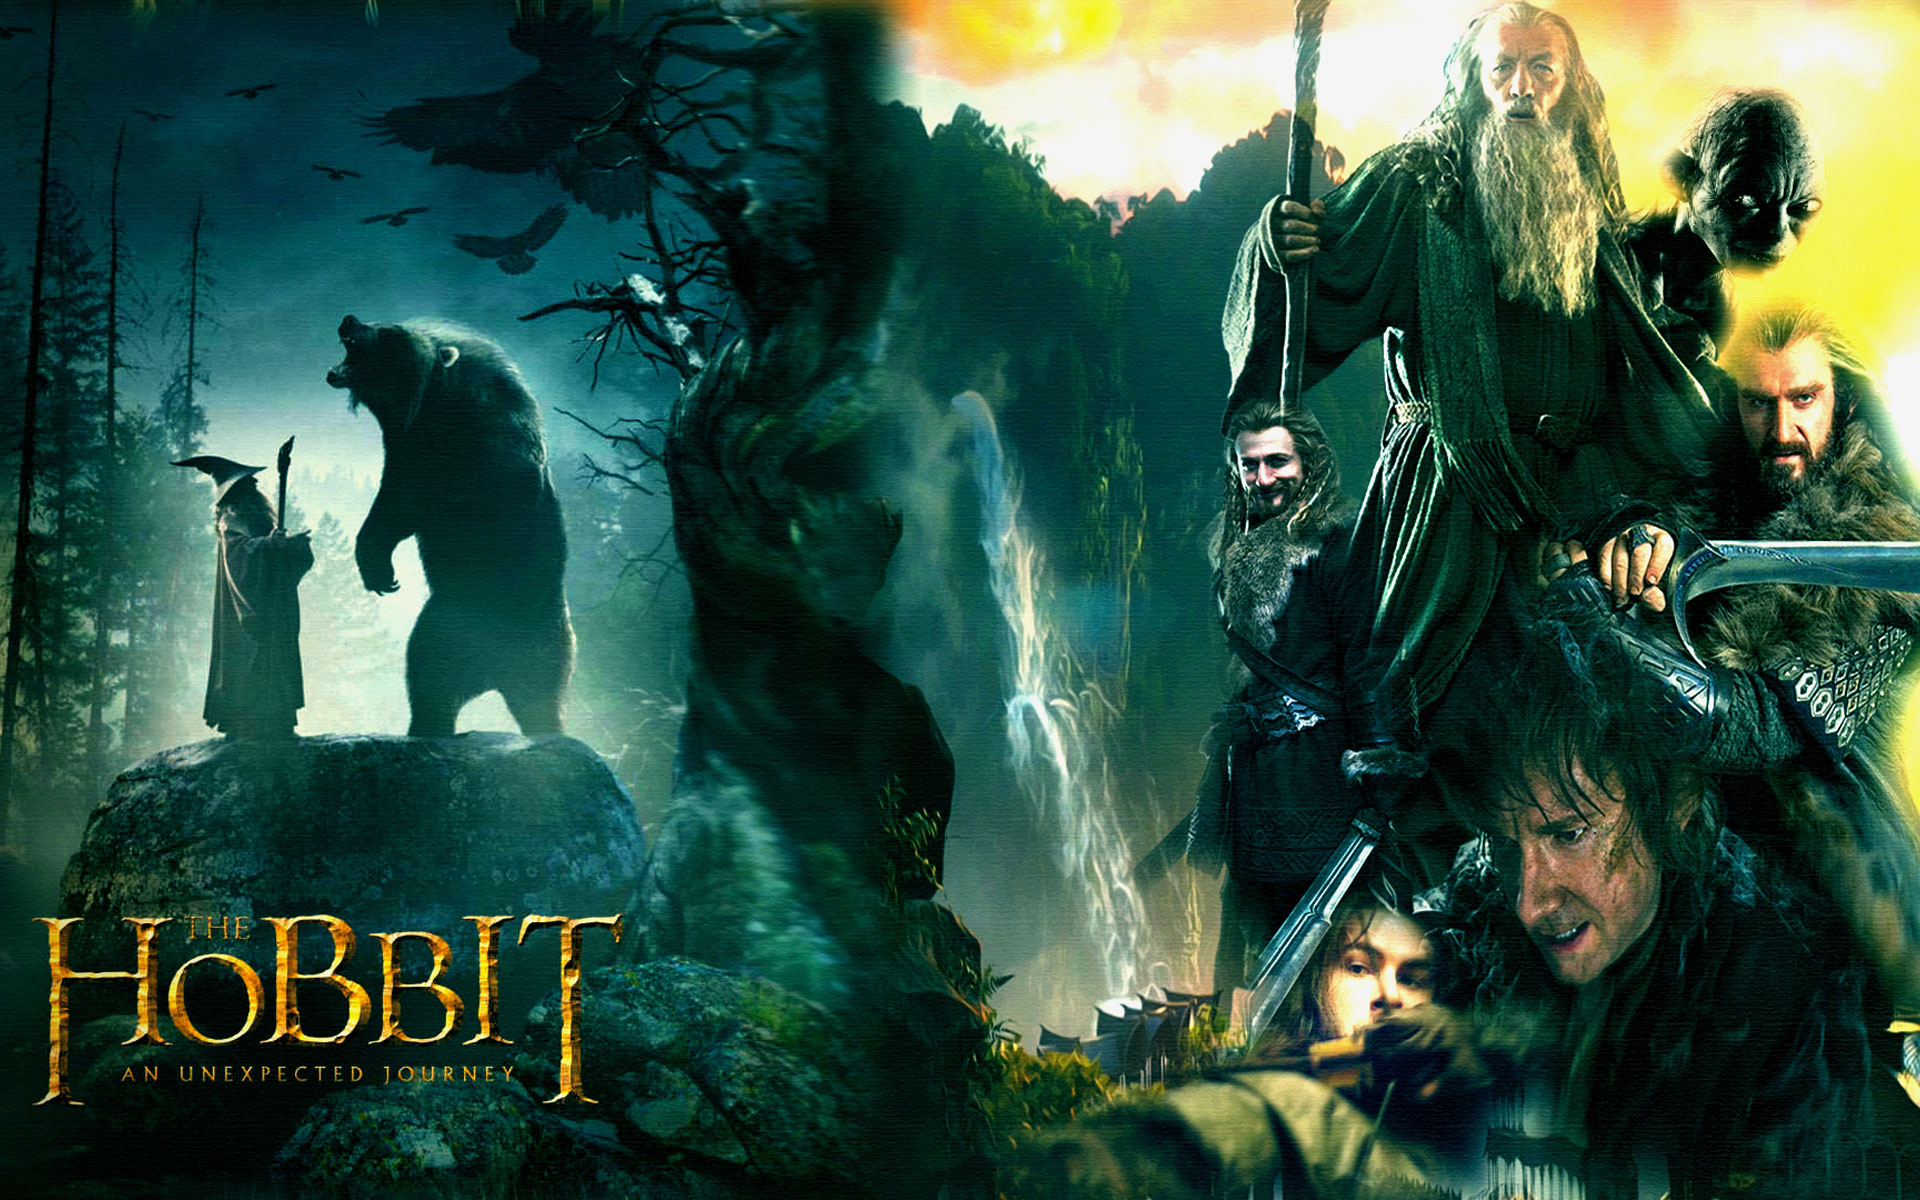 The Hobbit Movie Wallpaper 1920x1200